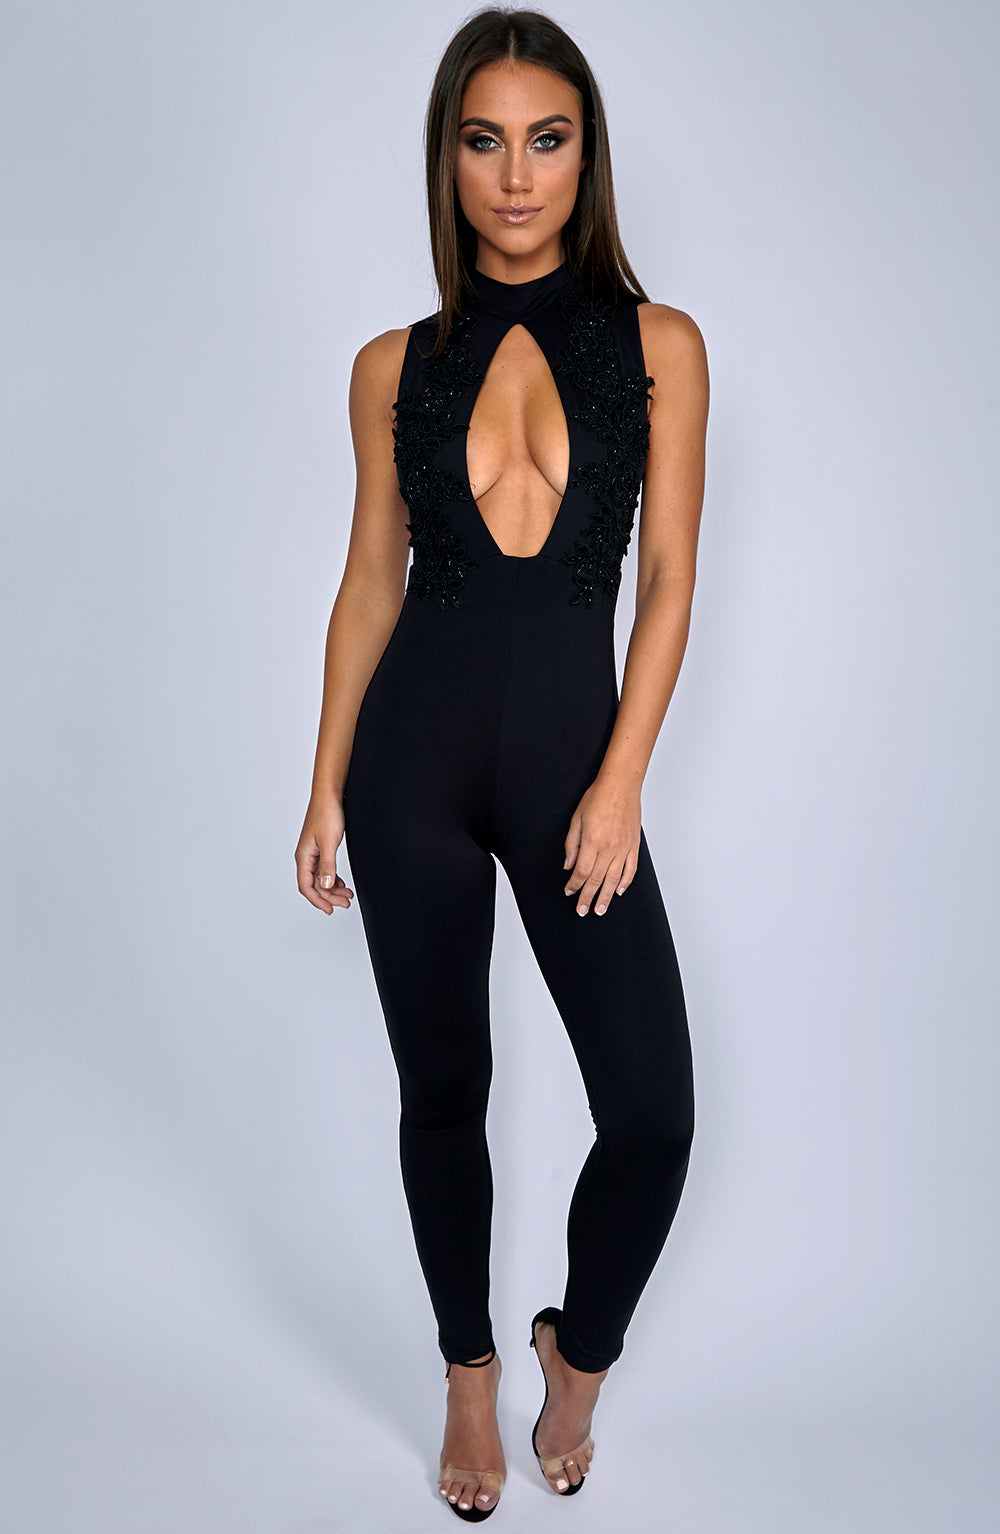 Take It Or Leave It Jumpsuit - Black